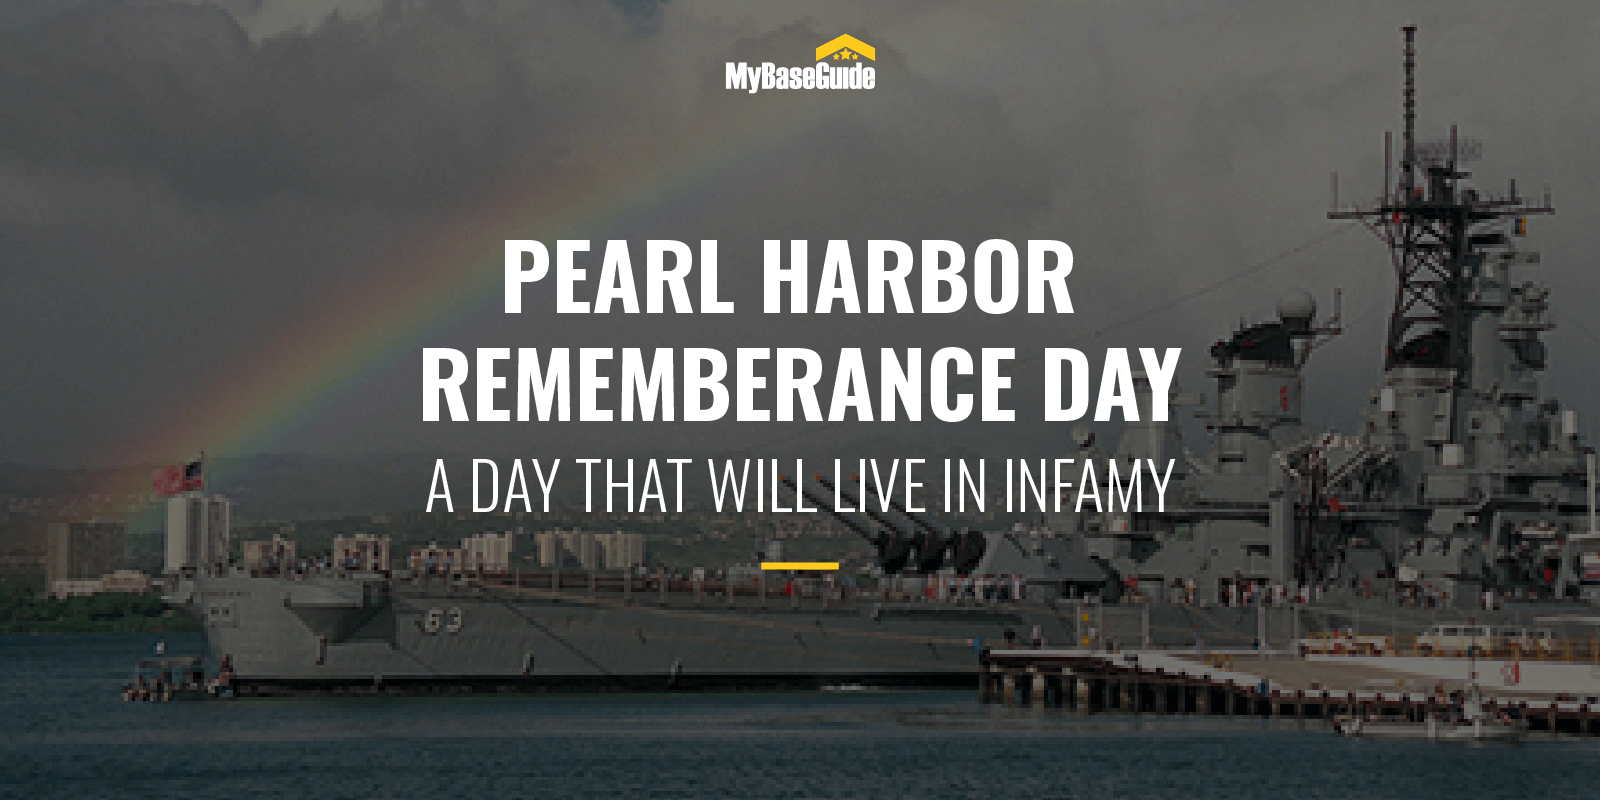 Pearl Harbor Remembrance Day, A Day That Will Live in Infamy